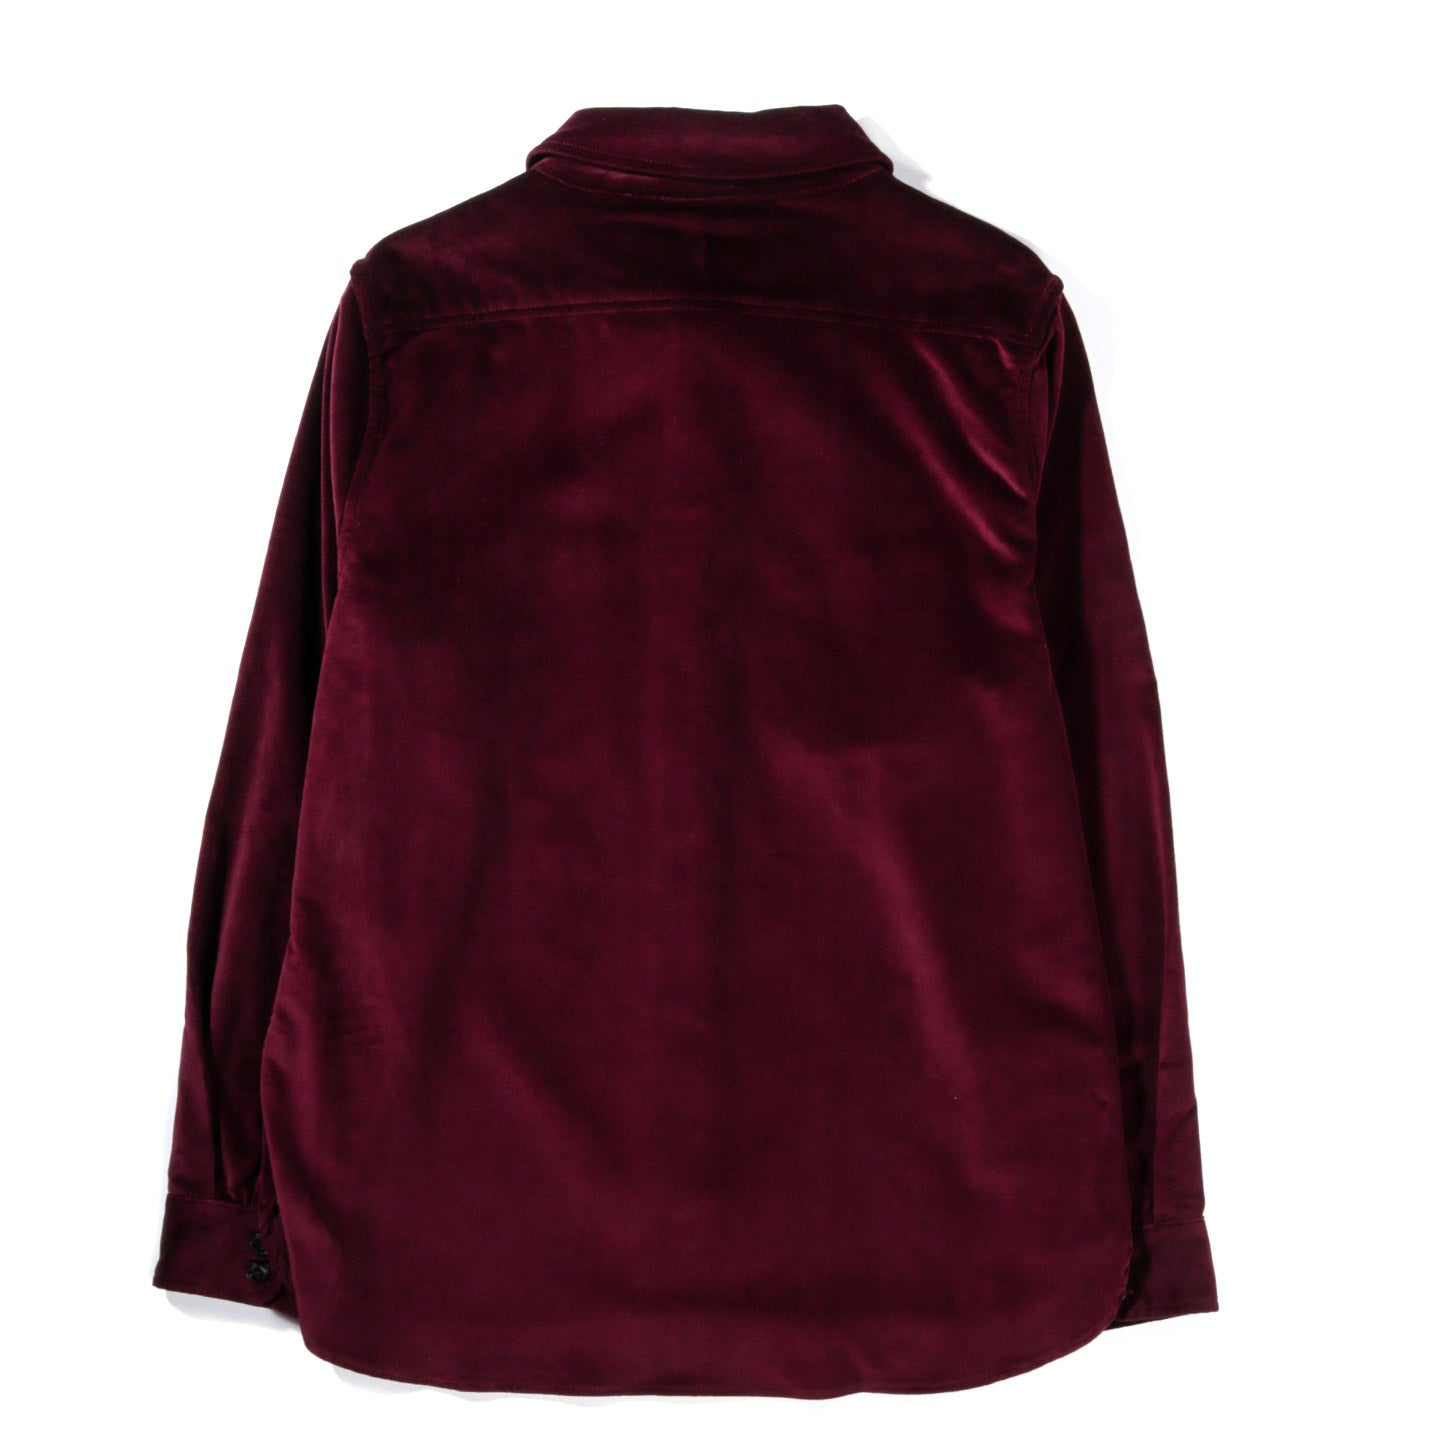 HOUSE OF ST. CLAIR CPO CRIMSON VELVET